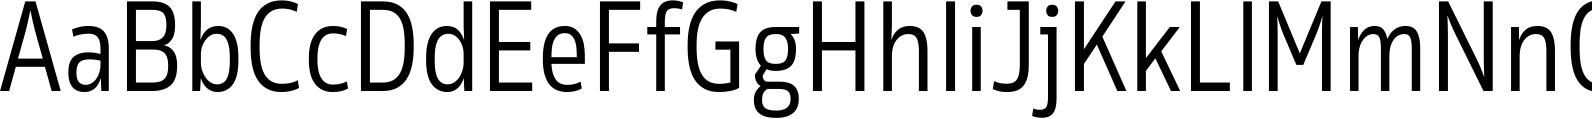 Rleud Narrow Regular Font